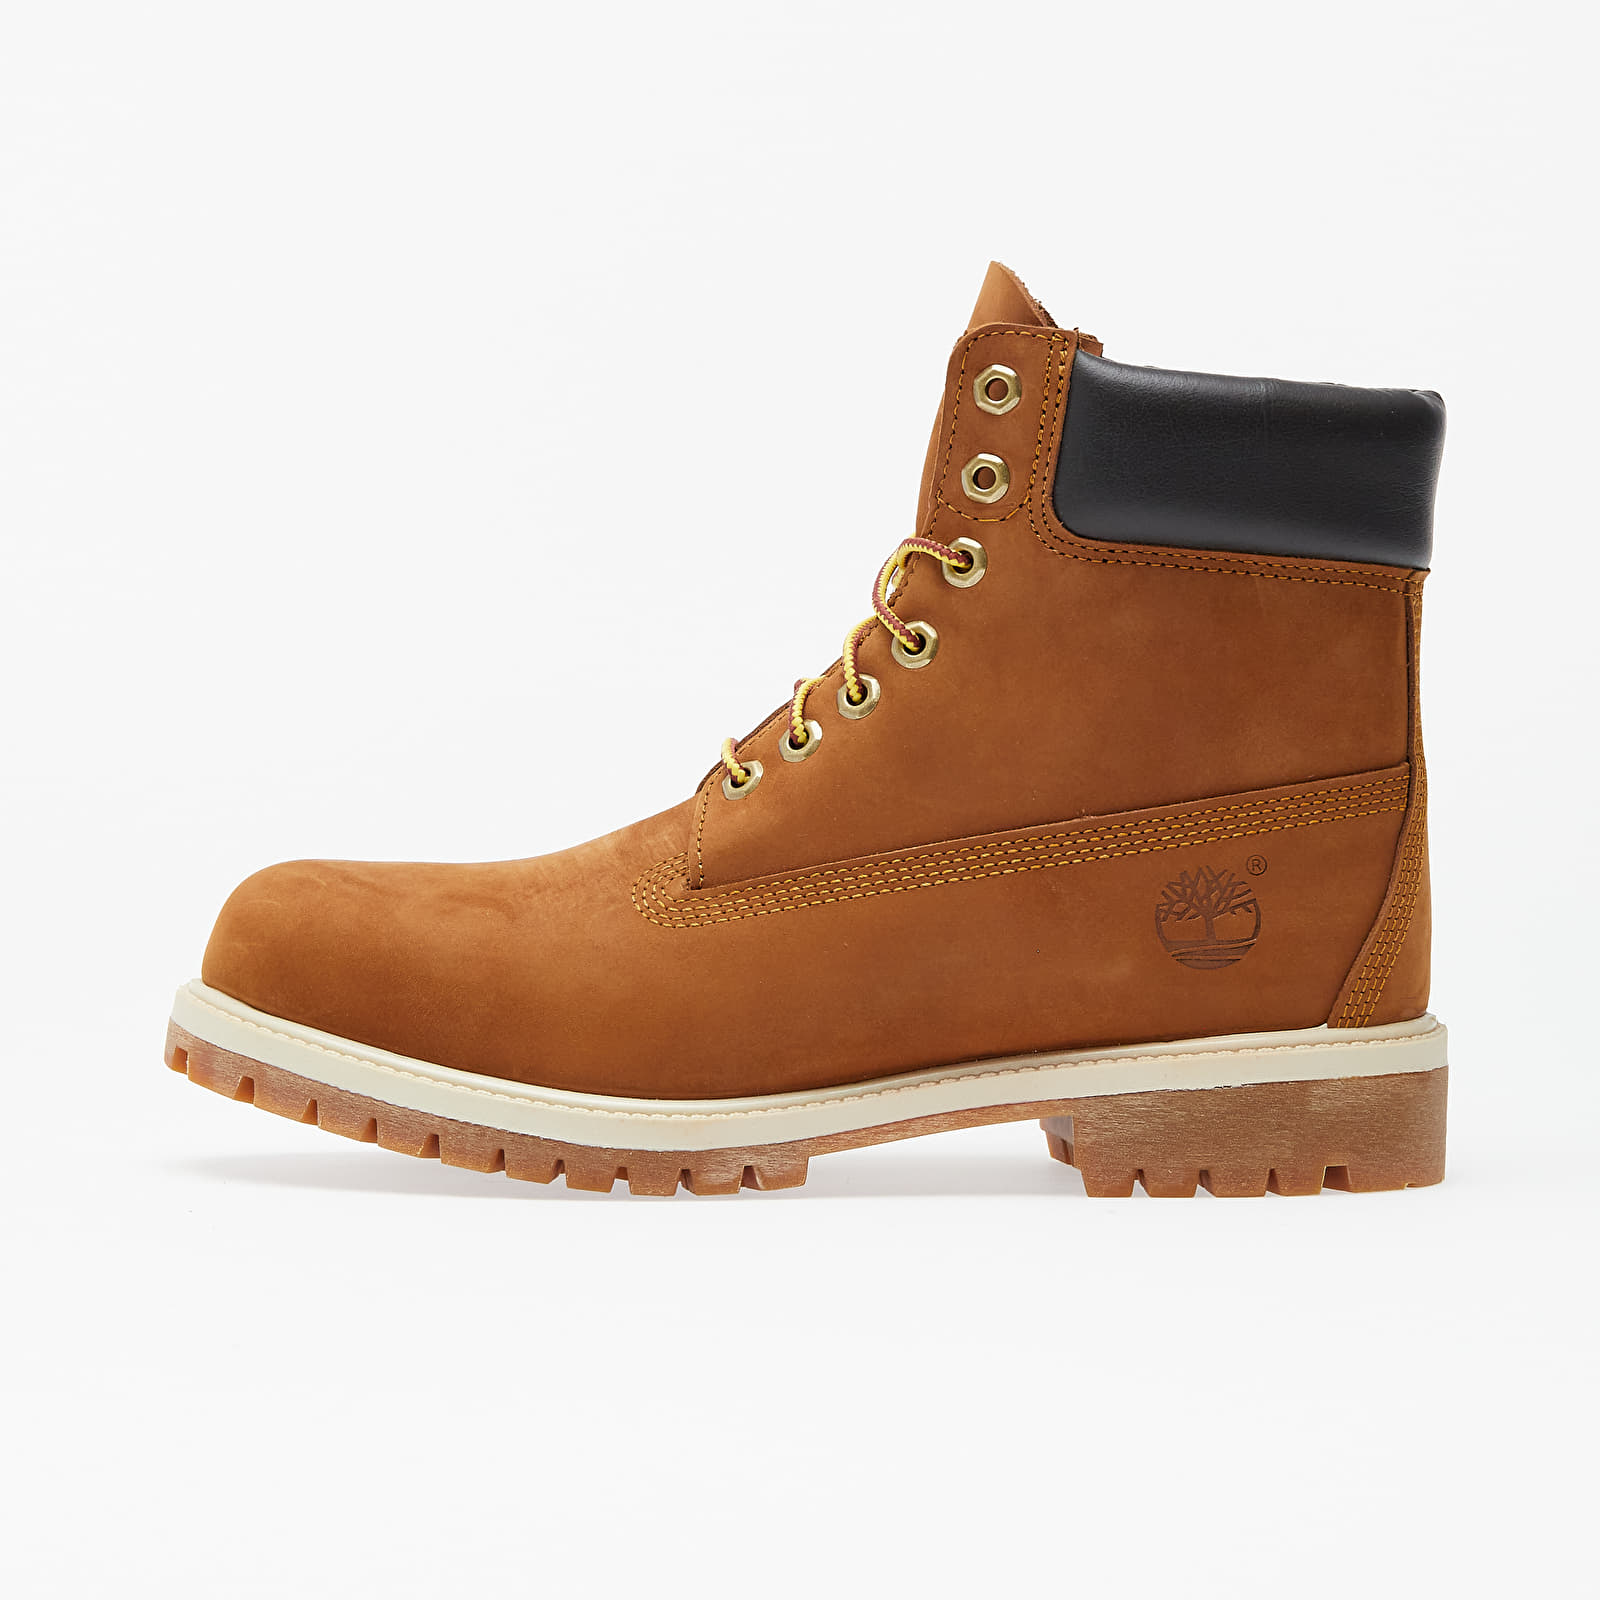 Chaussures et baskets homme Timberland Waterproof 6-Inch Premium Boot Rust Orange